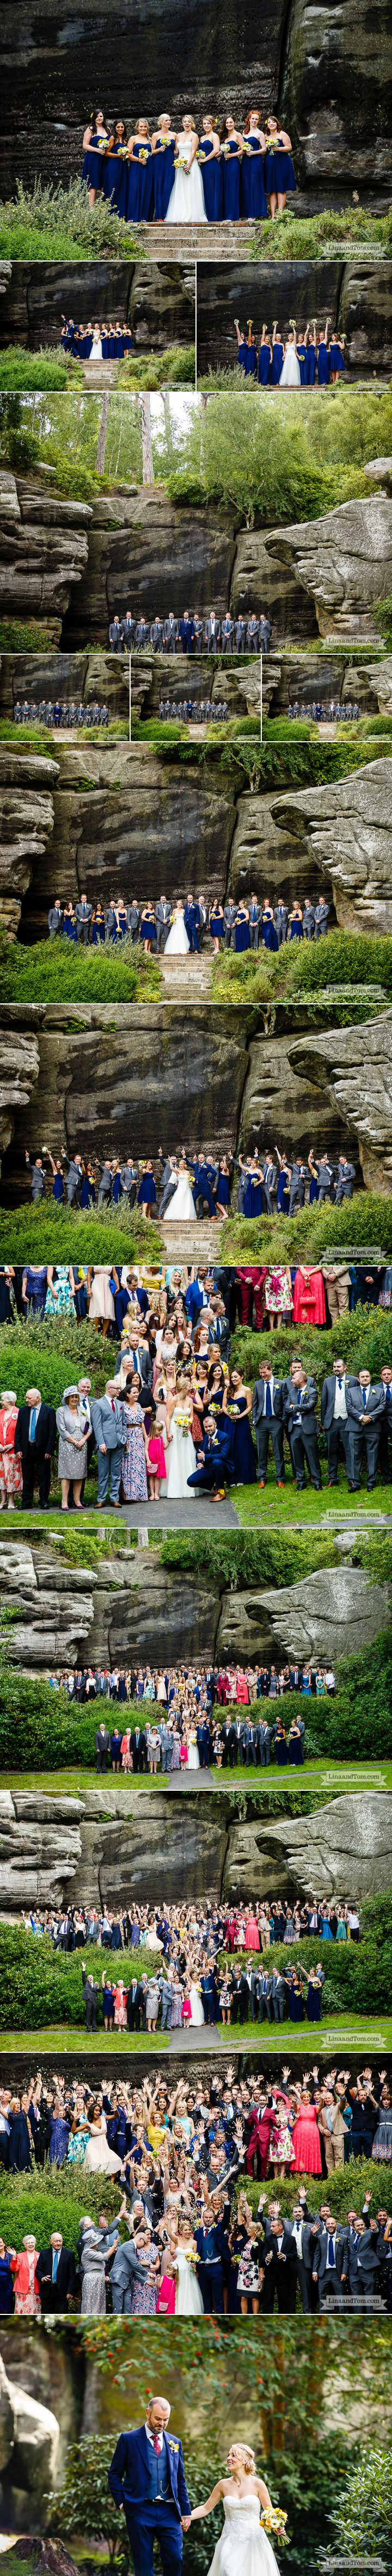 Claire_Stuart_Wedding_HighRocks_12